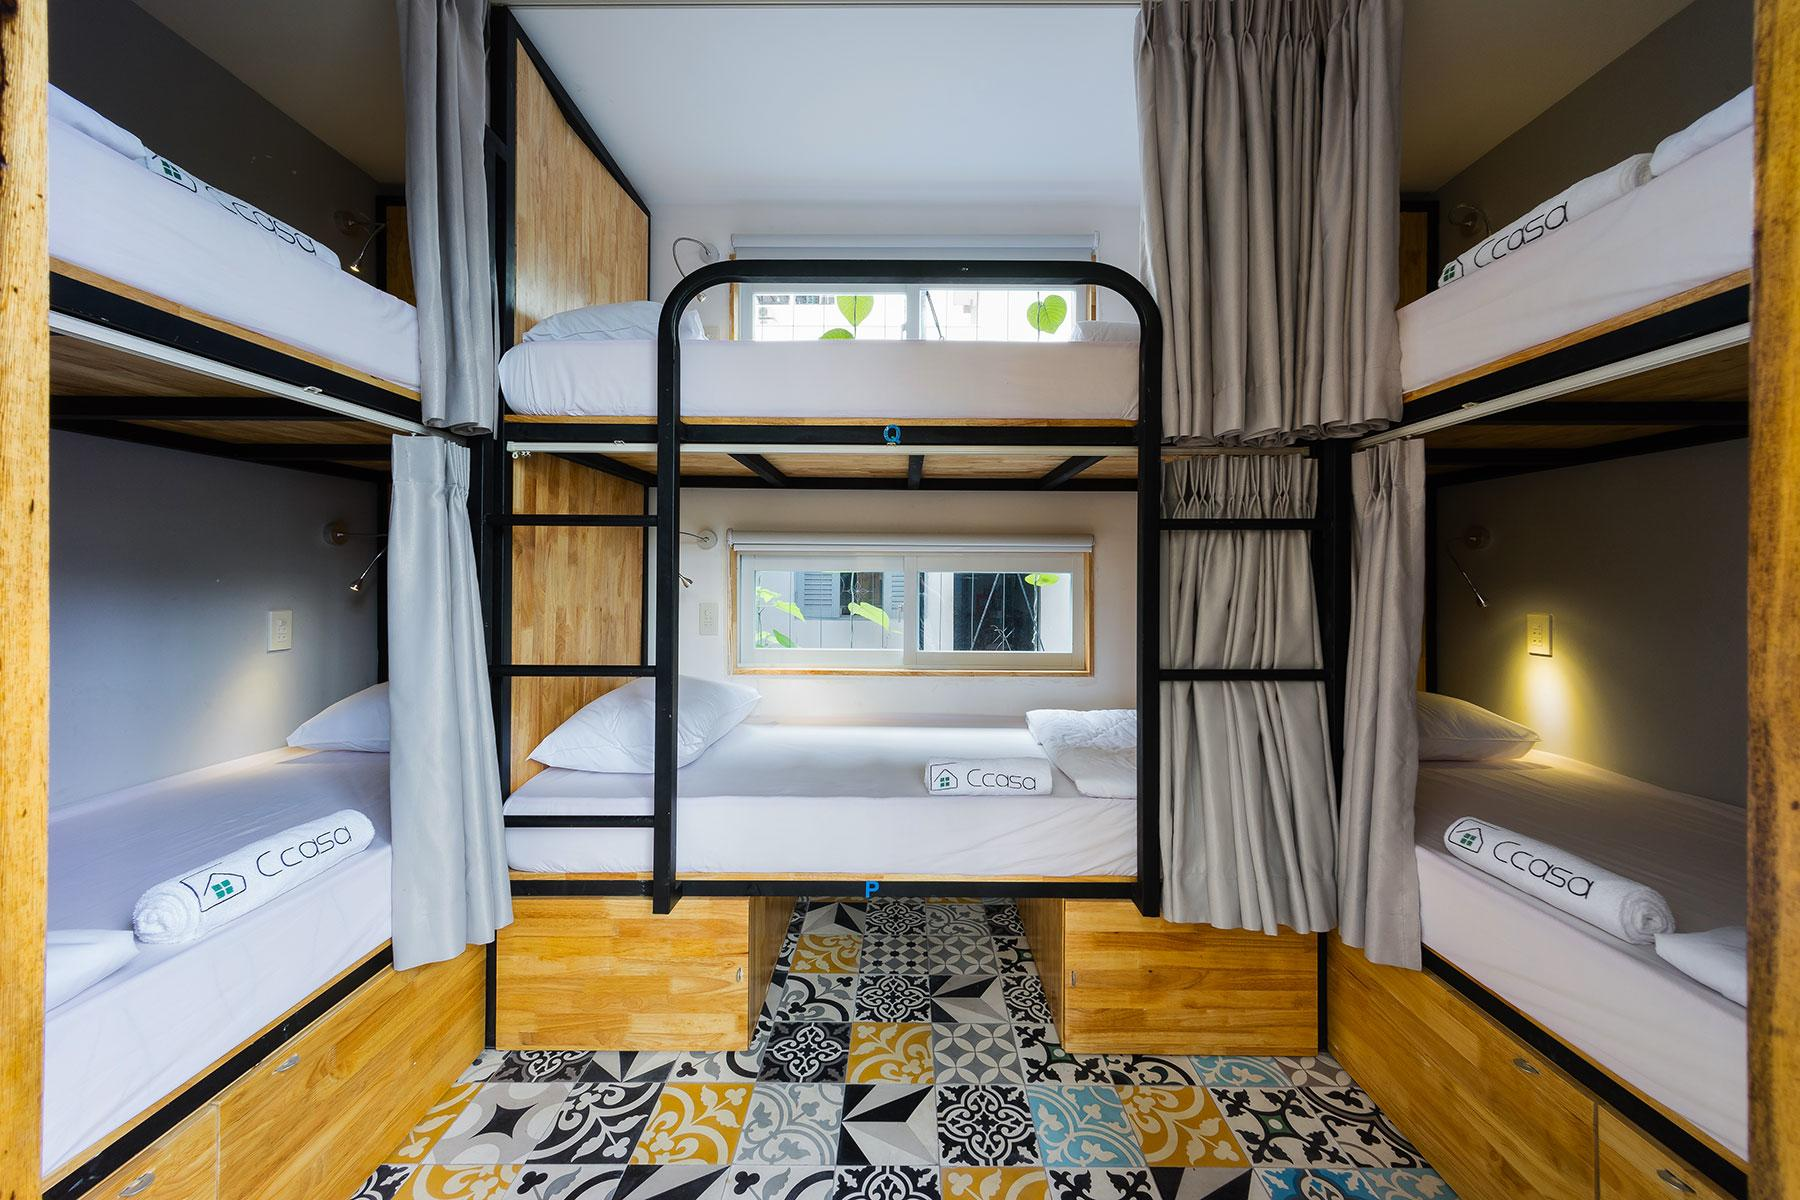 Colinial Hotel Rooms